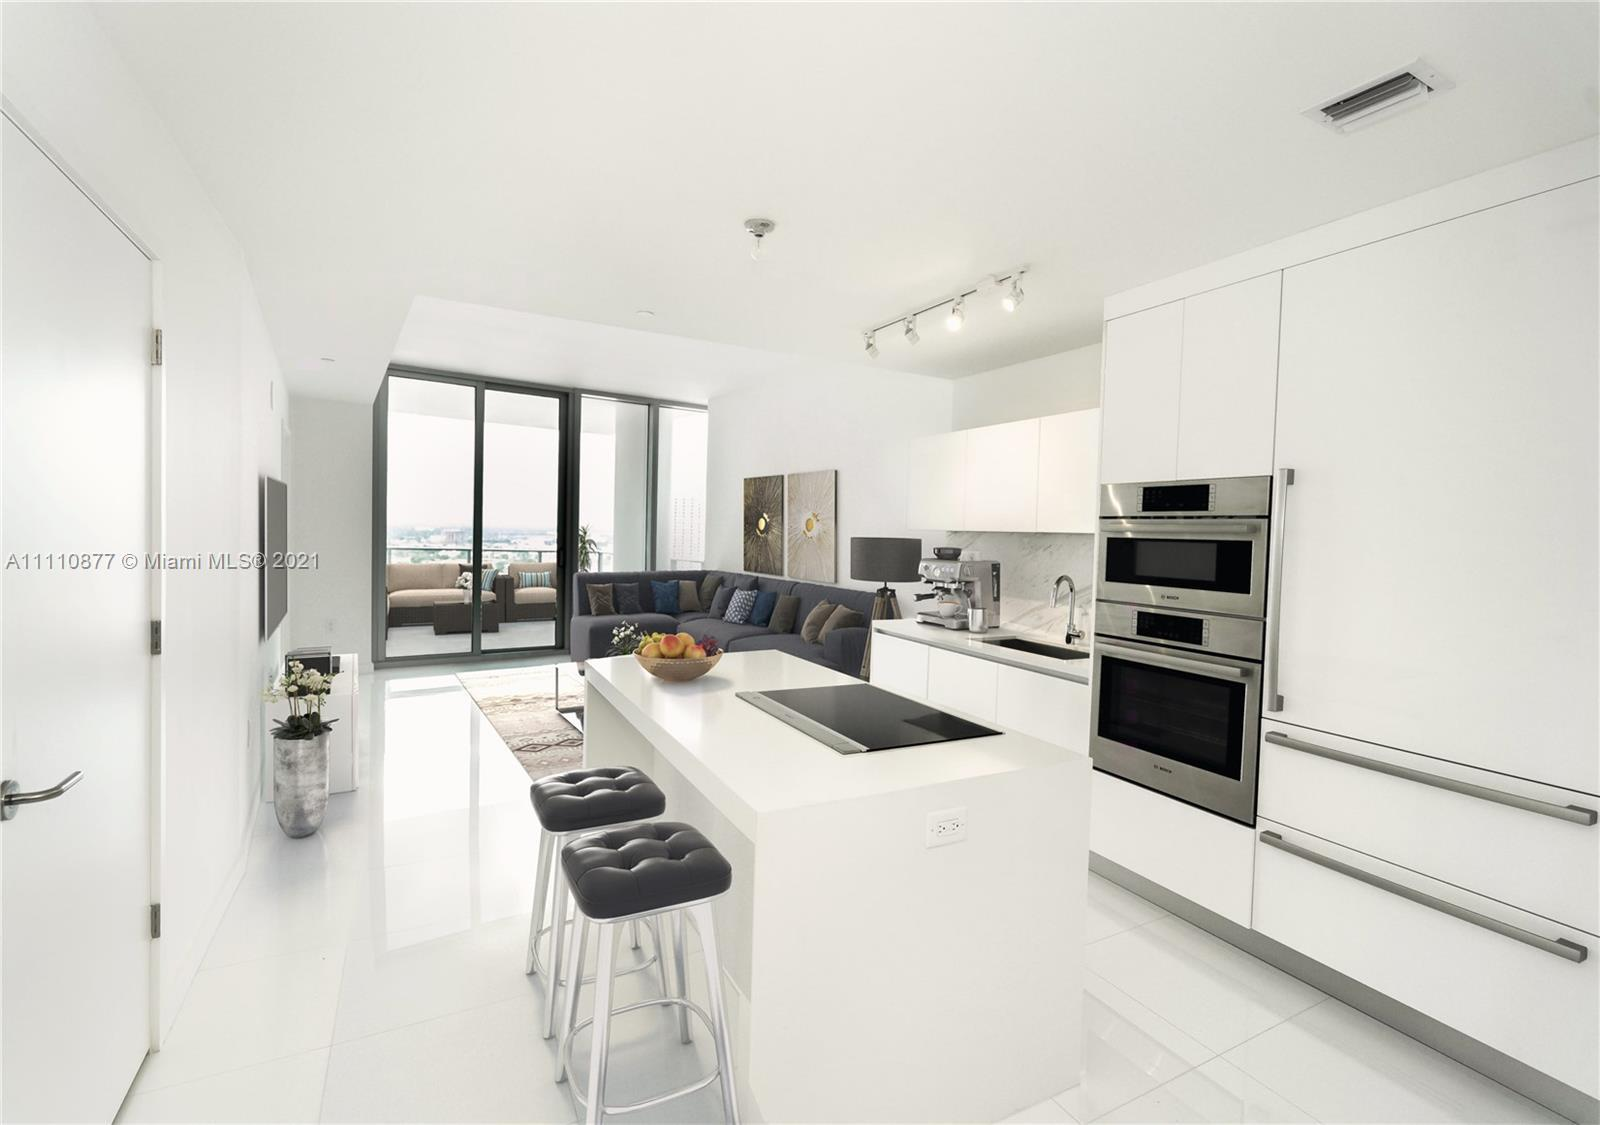 Welcome to the home you never have to leave! Take your private elevator to this sparkling modern uni